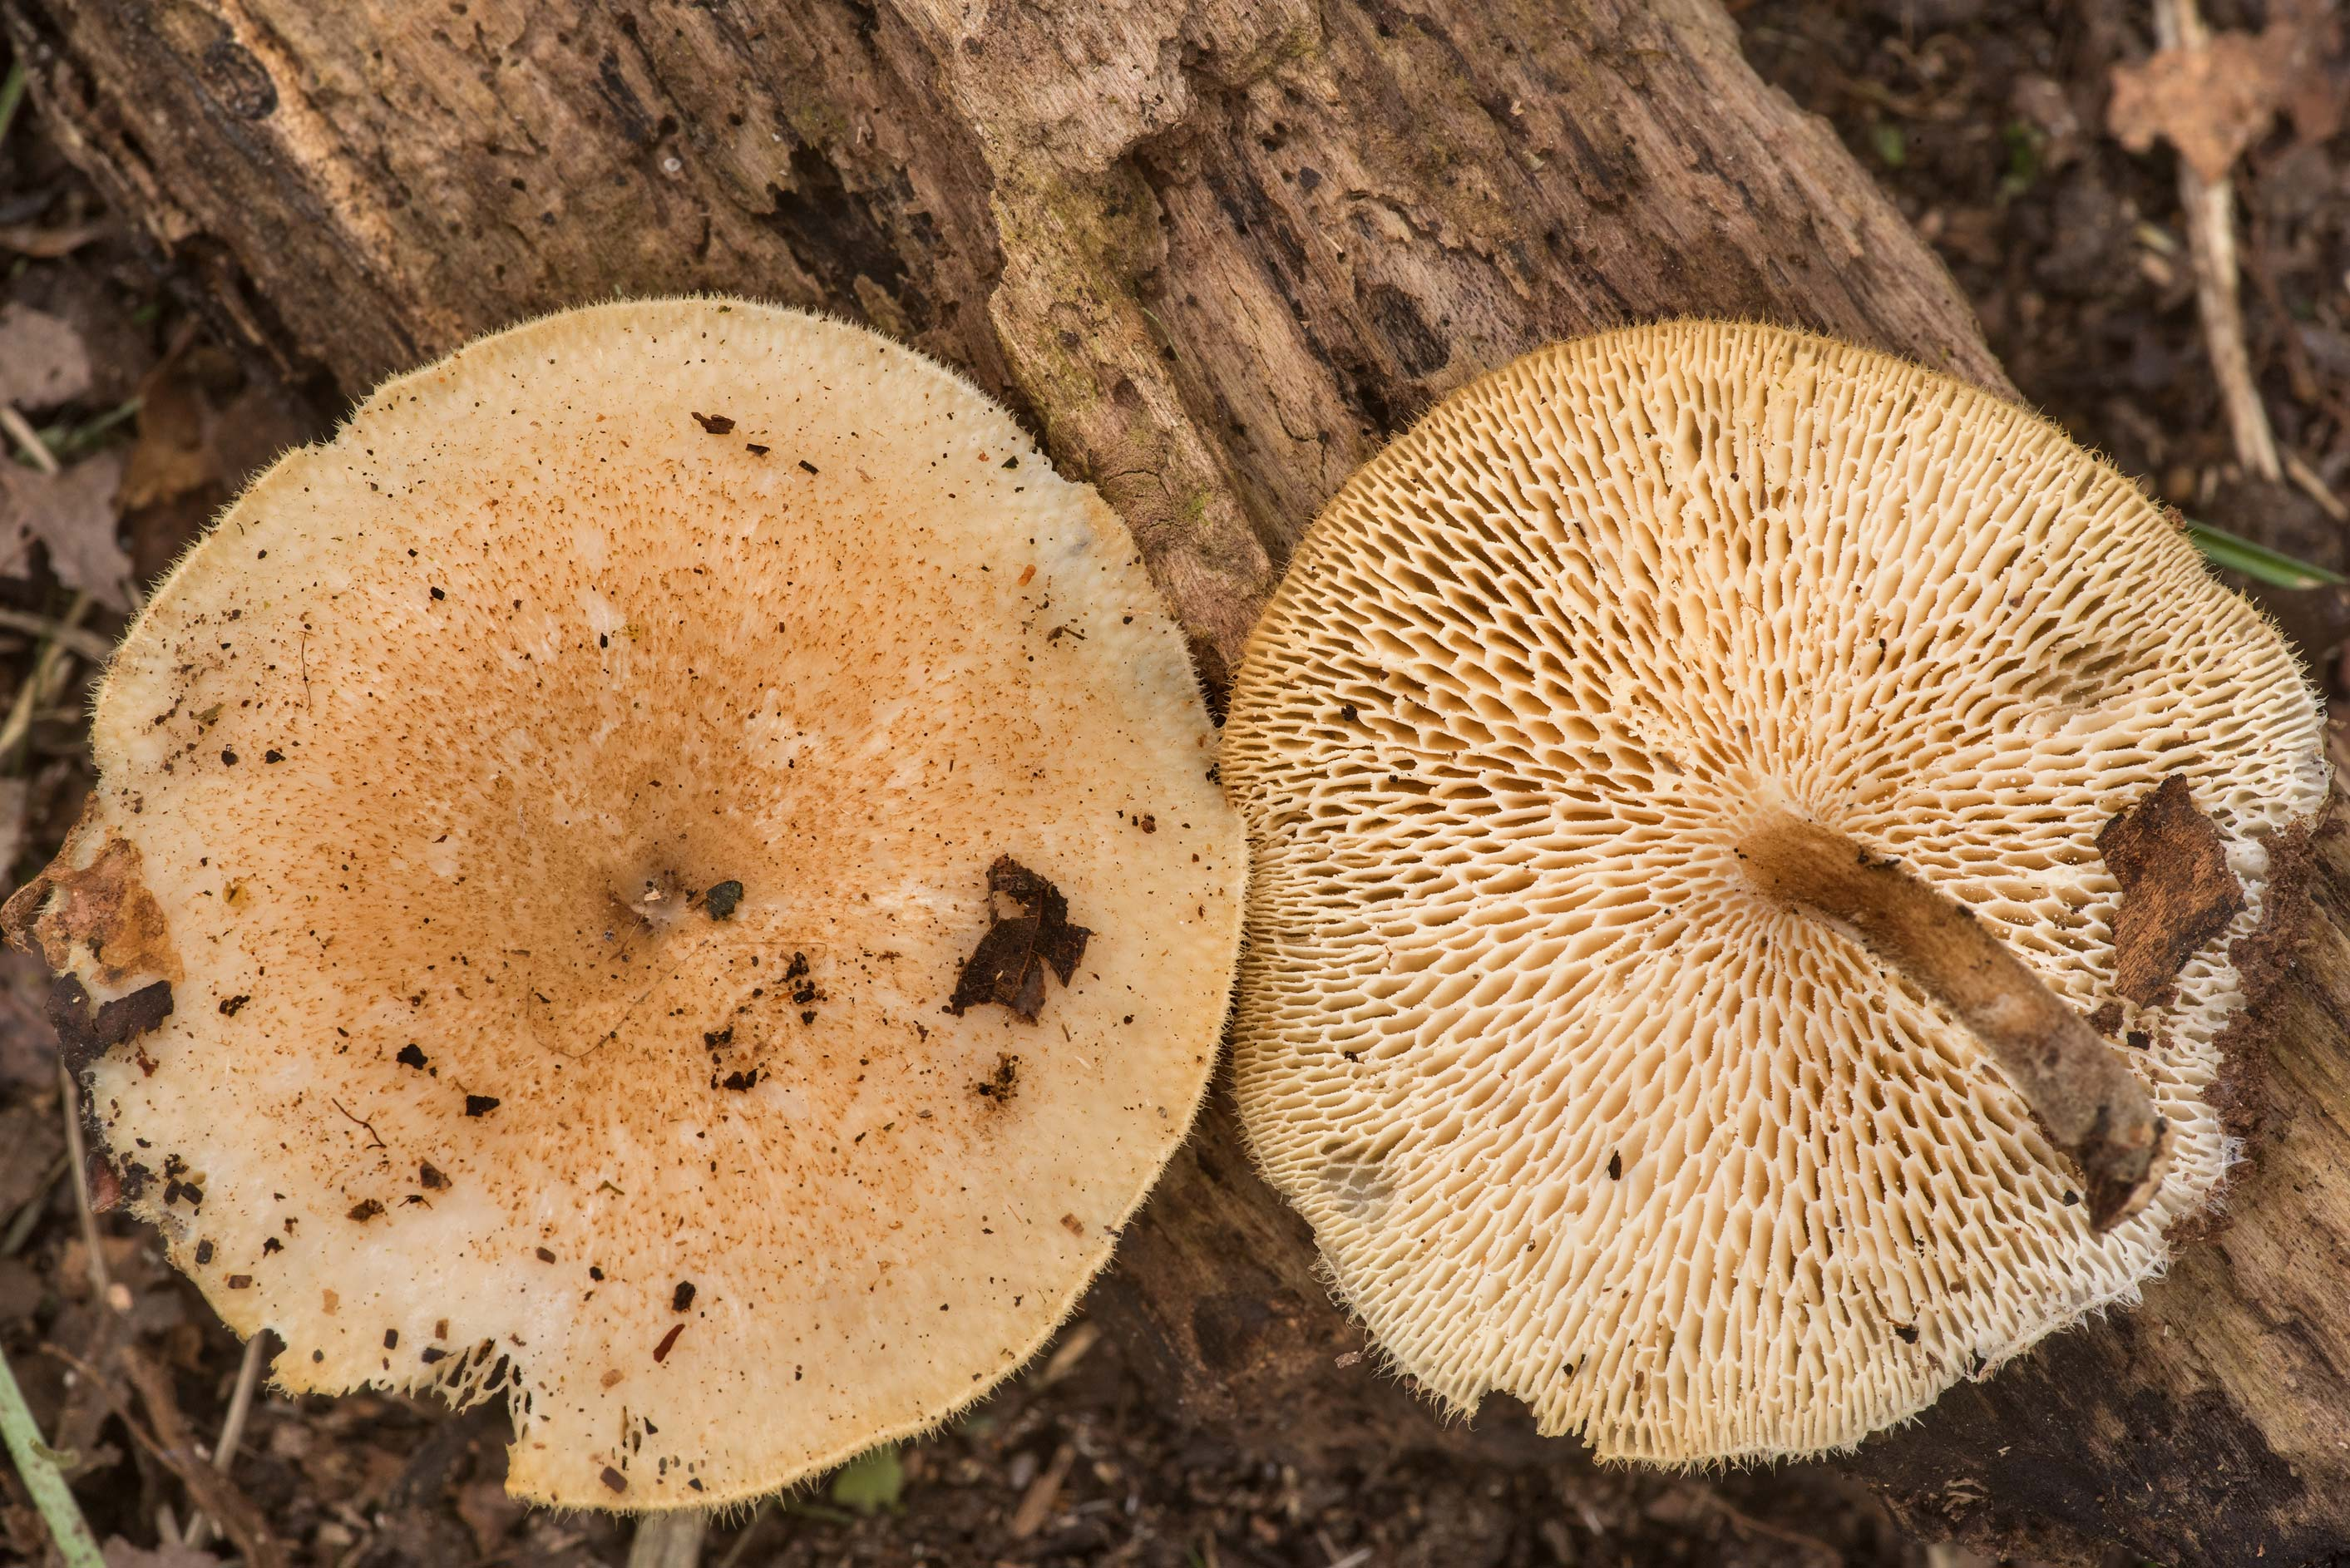 Spring polypore mushrooms (Lentinus arcularius) in Lick Creek Park. College Station, Texas